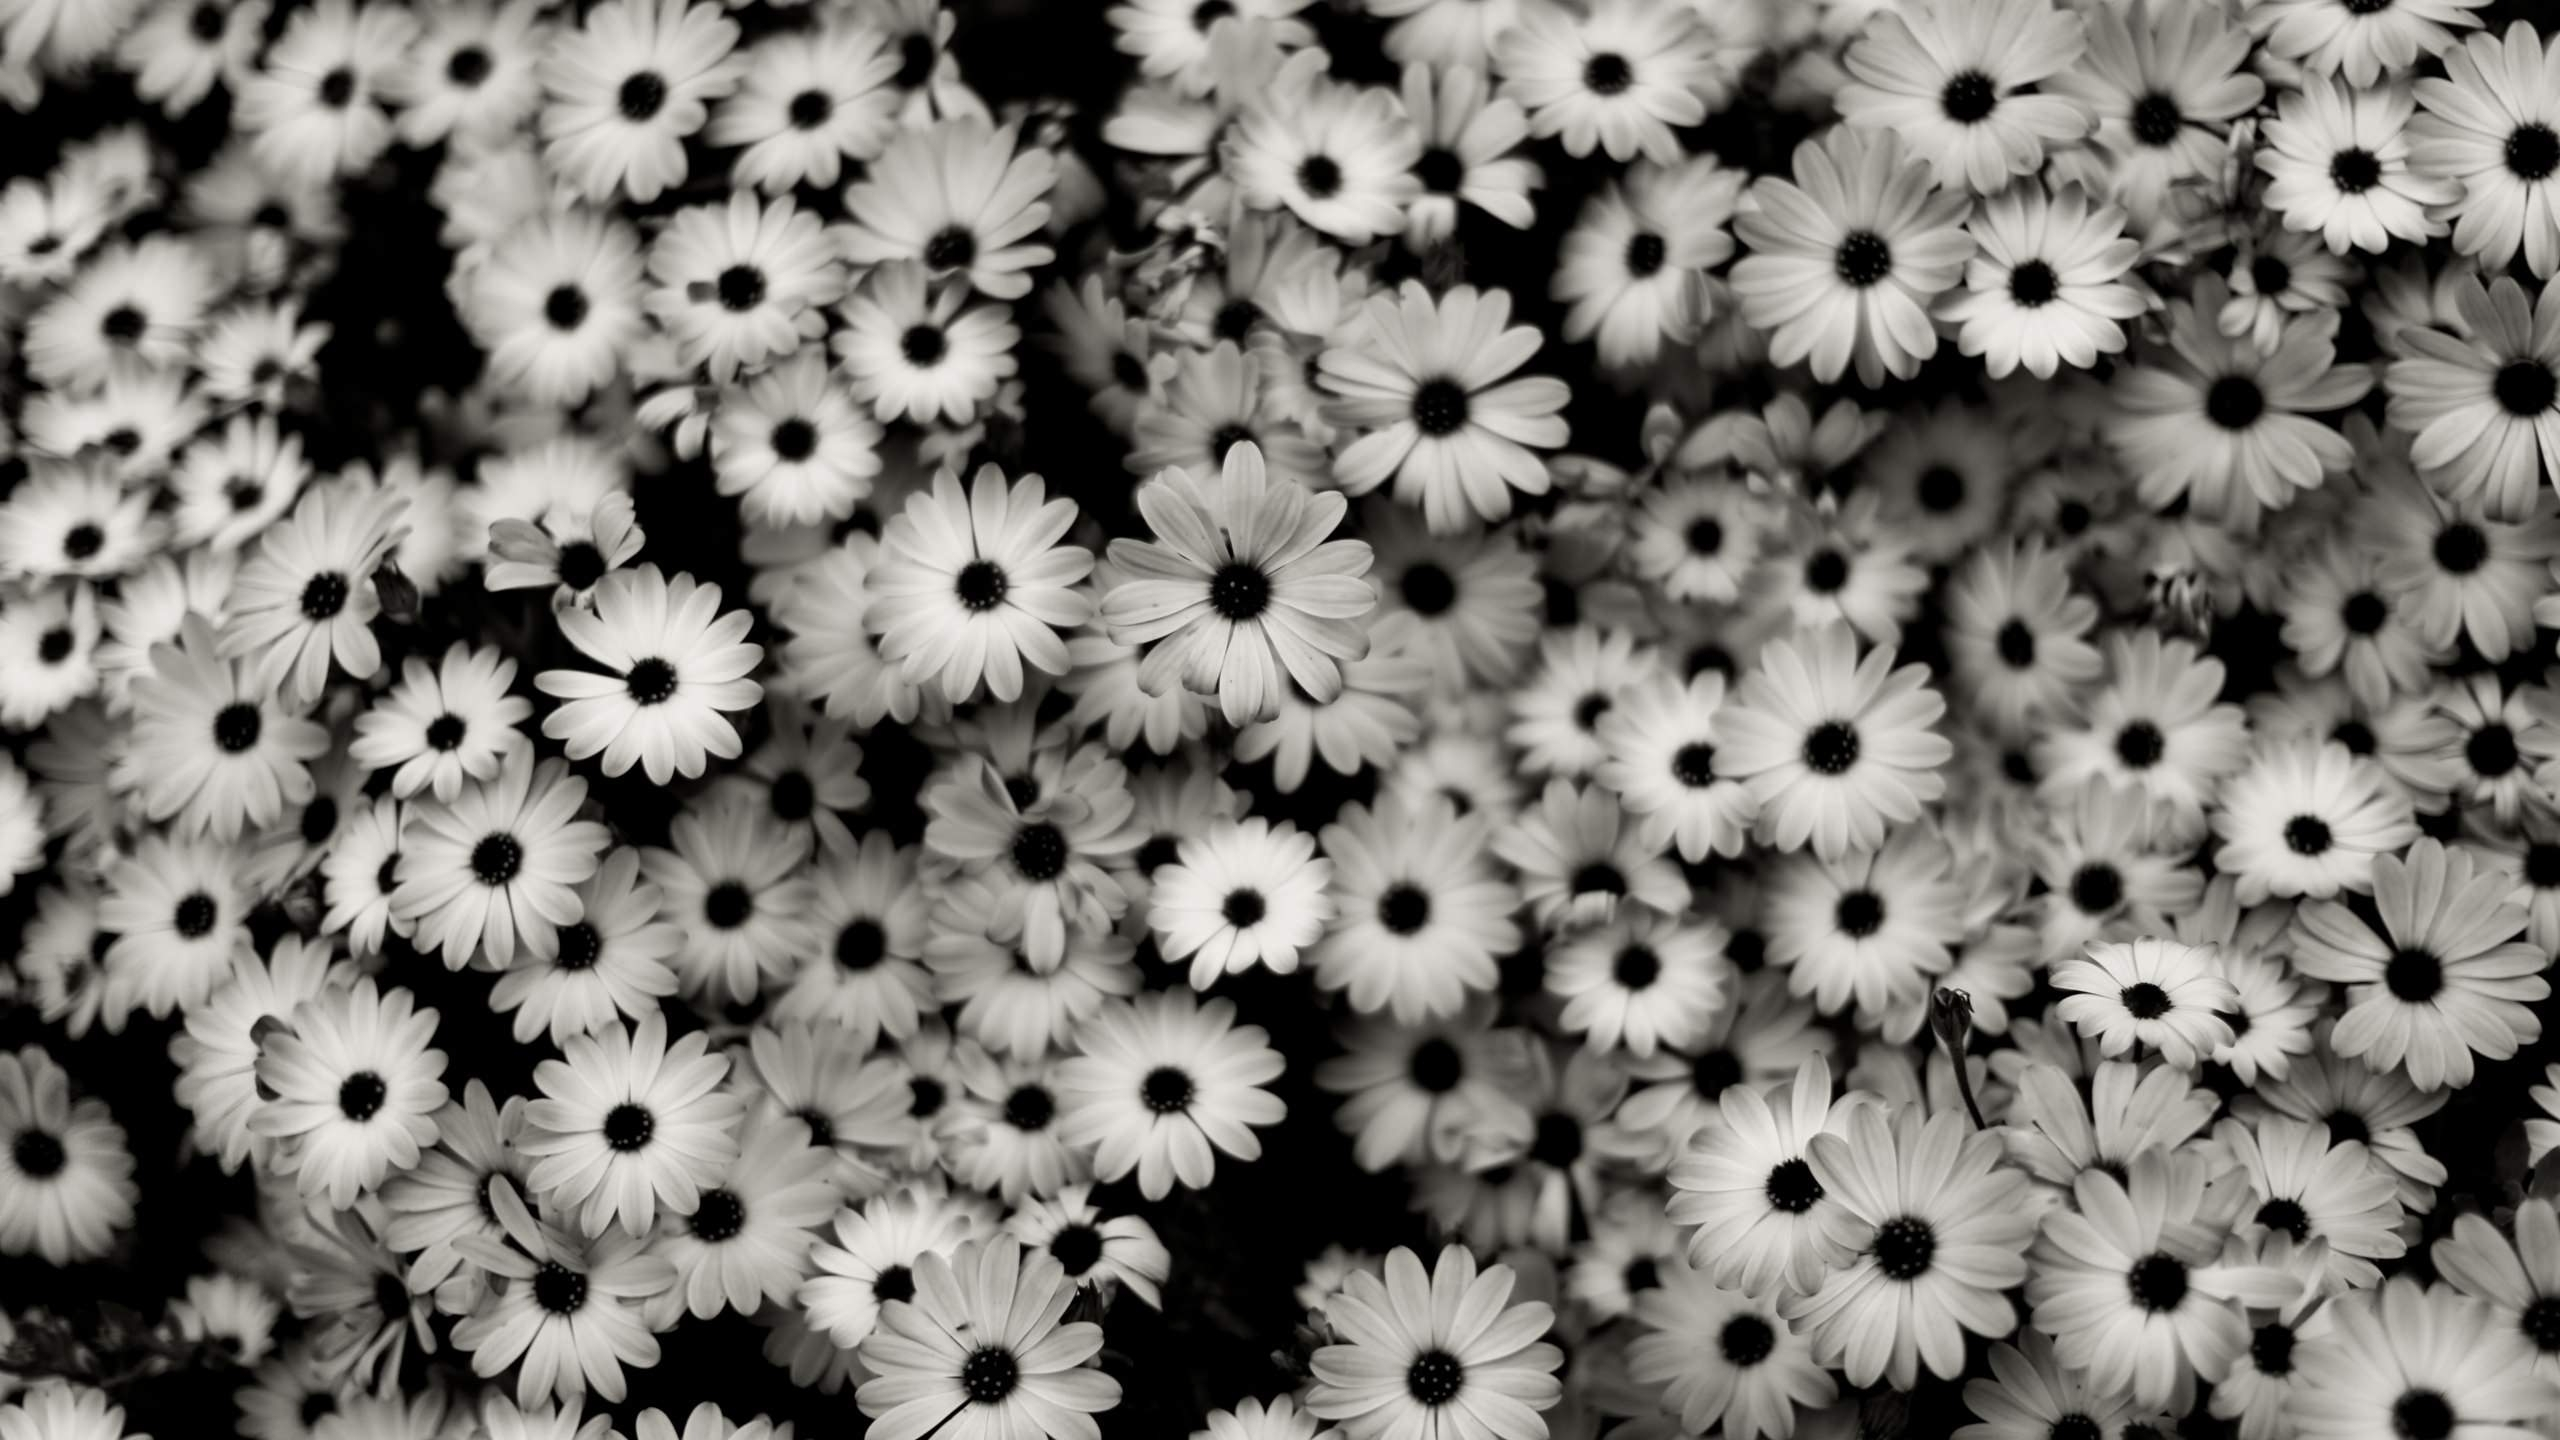 Title Wallpaperwiki Fascinating Black And White Floral Wallpaper Pic Dimension 2560 X 1440 File Type JPG JPEG